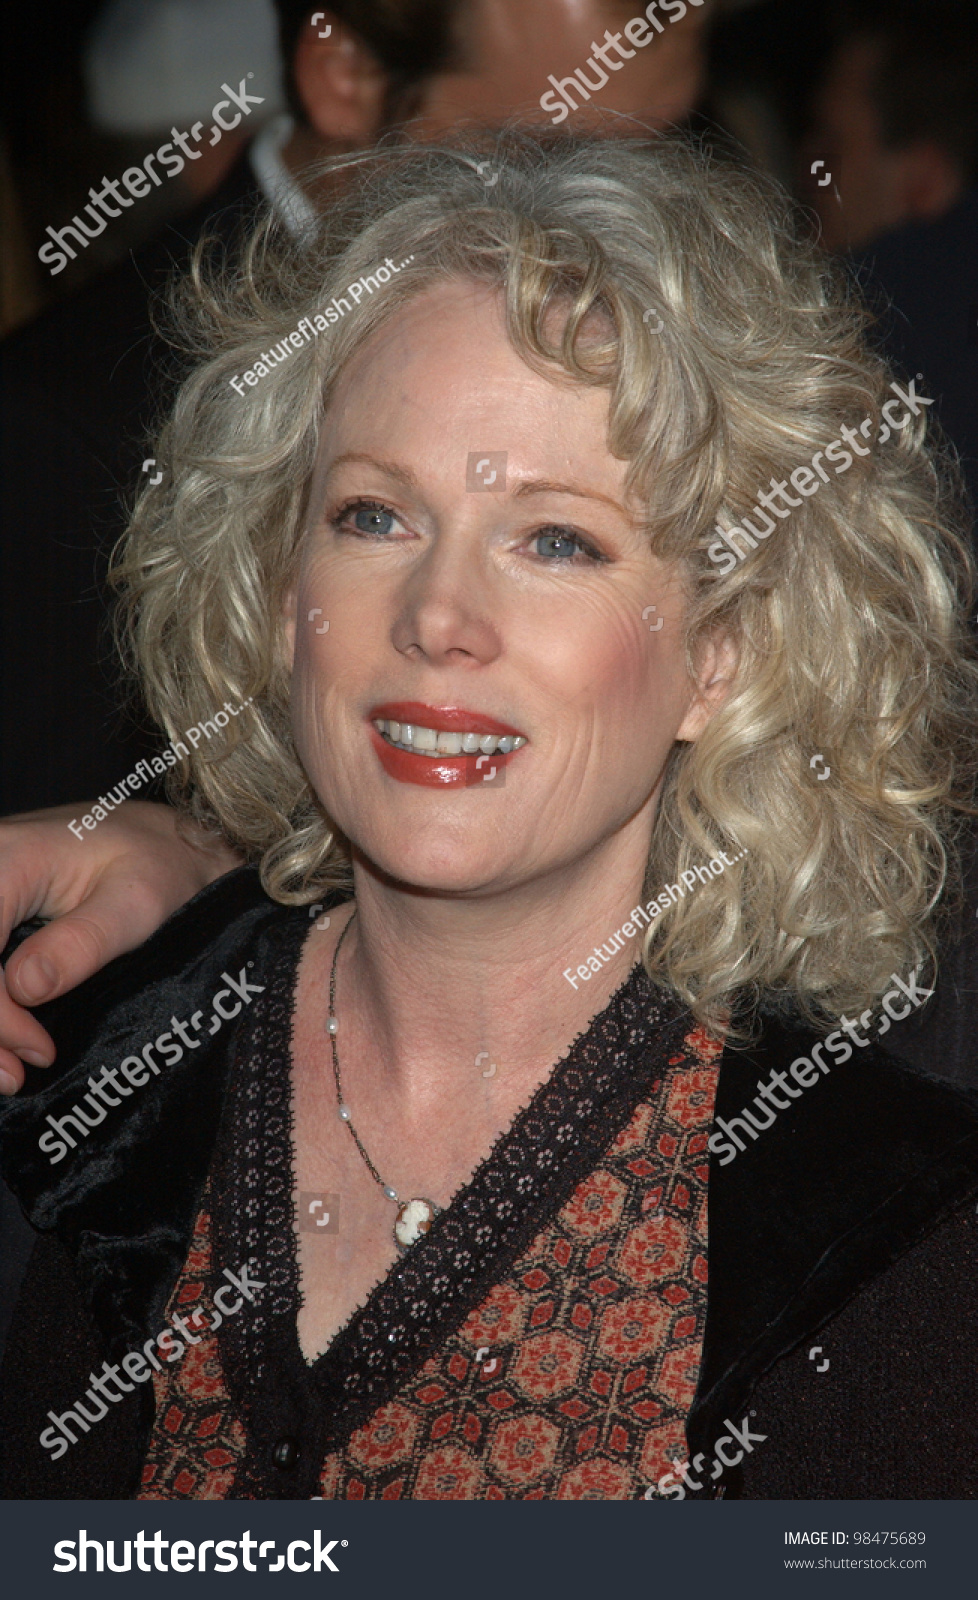 Actress Julia Duffy World Premiere Her Stock Photo